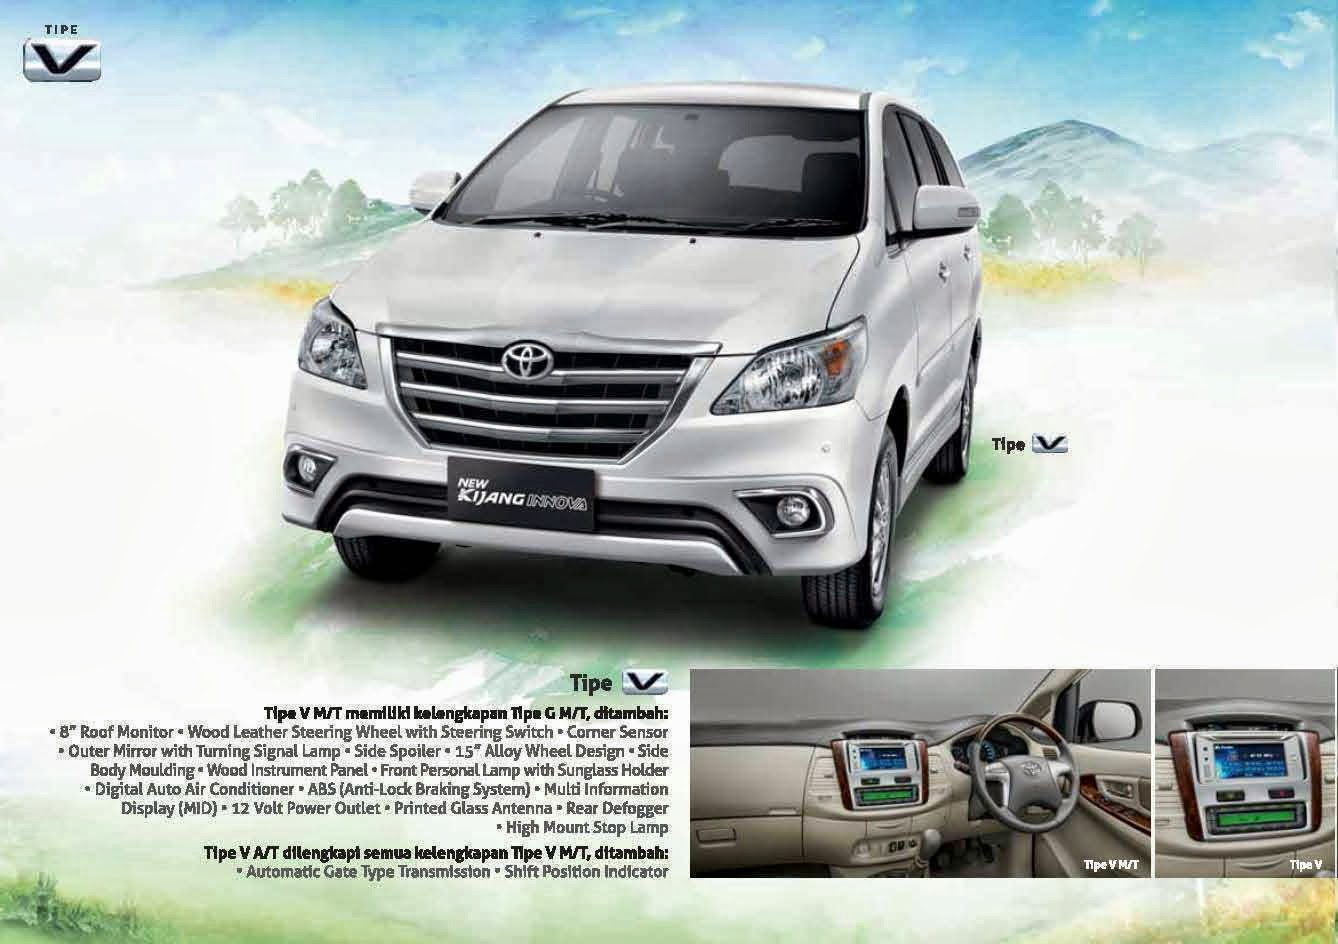 Harga Grand New Avanza Veloz 2019 All-new Toyota Camry (acv 70) Brosur Kijang Innova 2014 Html Autos Post